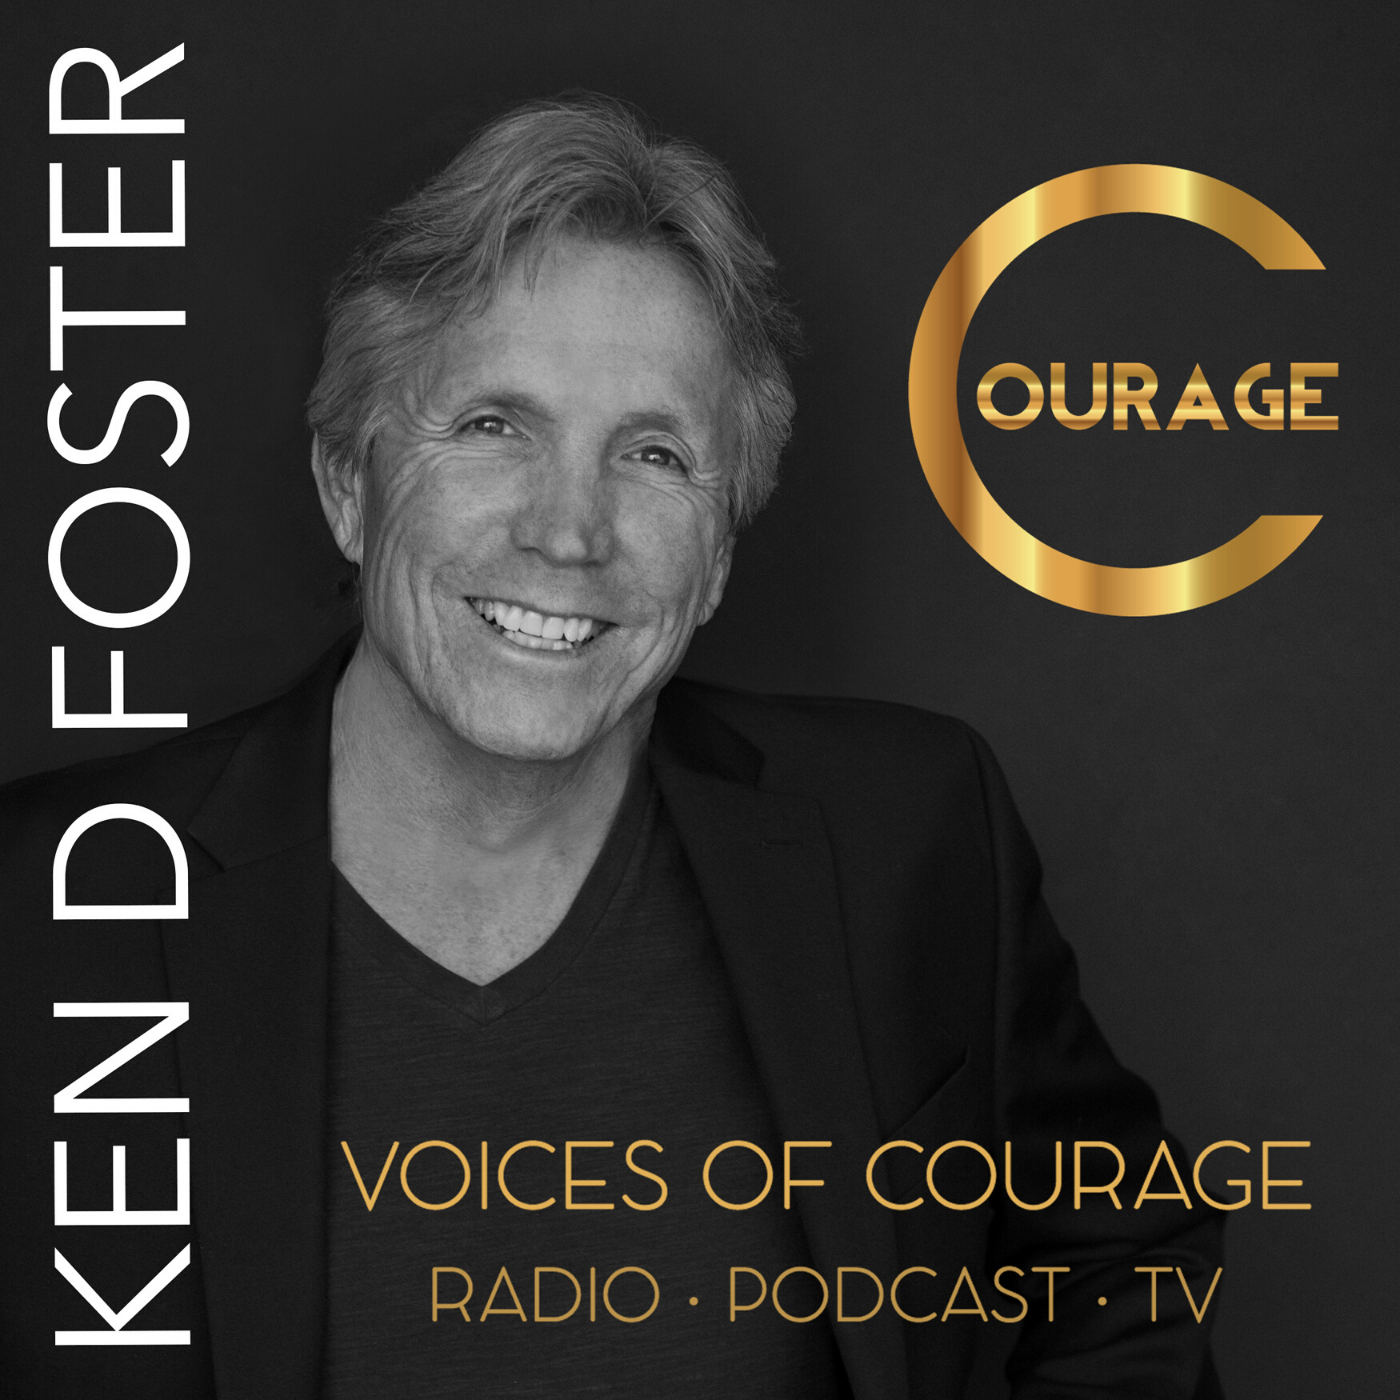 121: The Courage to Win in a Wacky World with Cyndi Dale and Denis Waitley show art